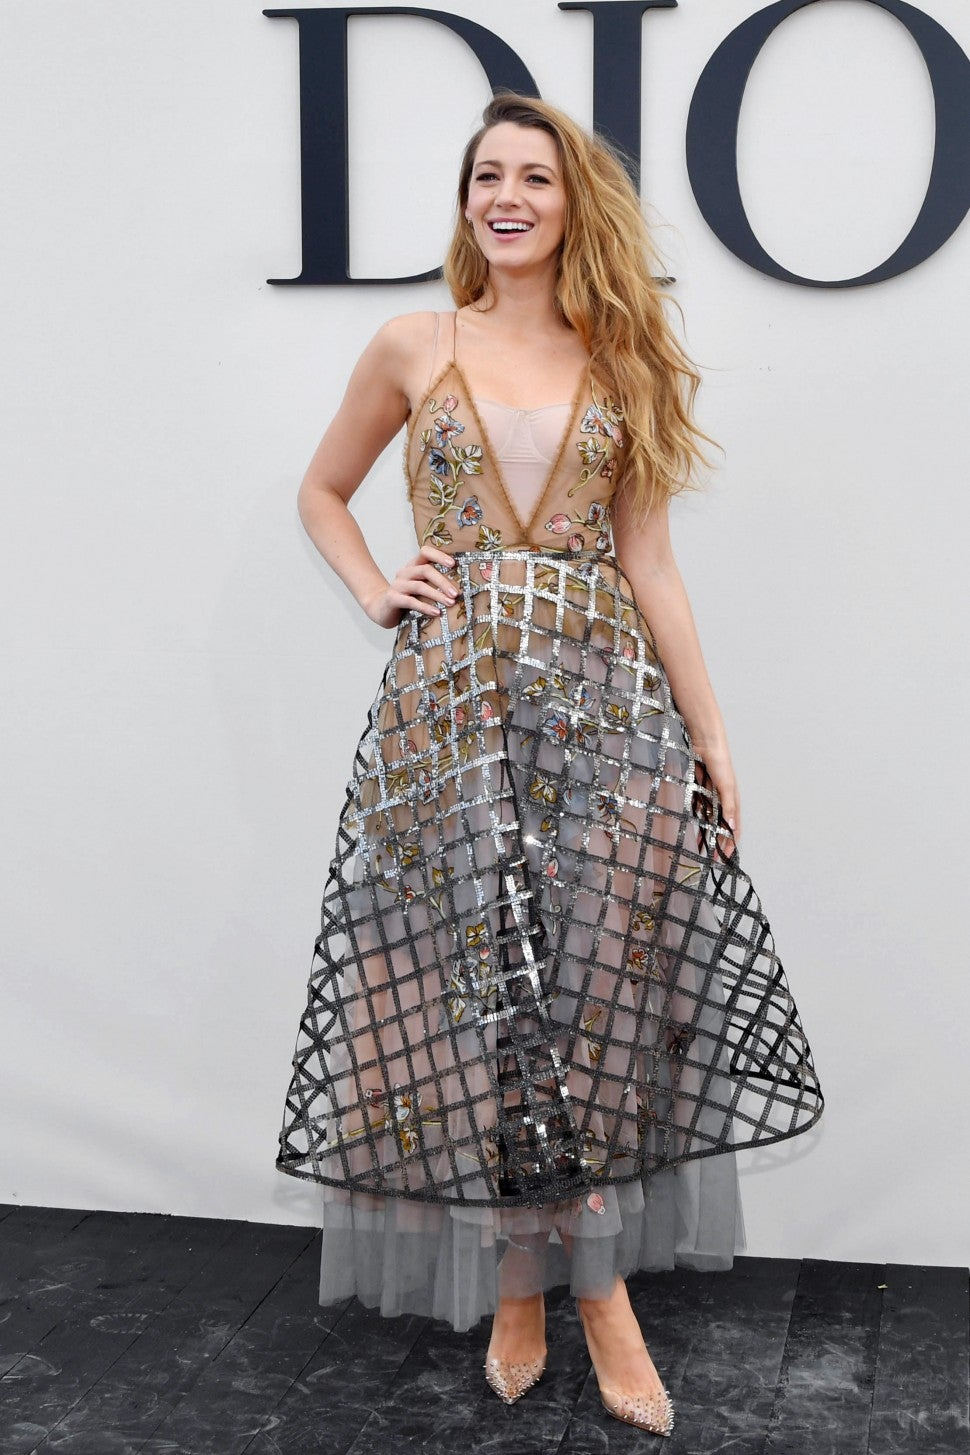 Blake Lively at Dior show